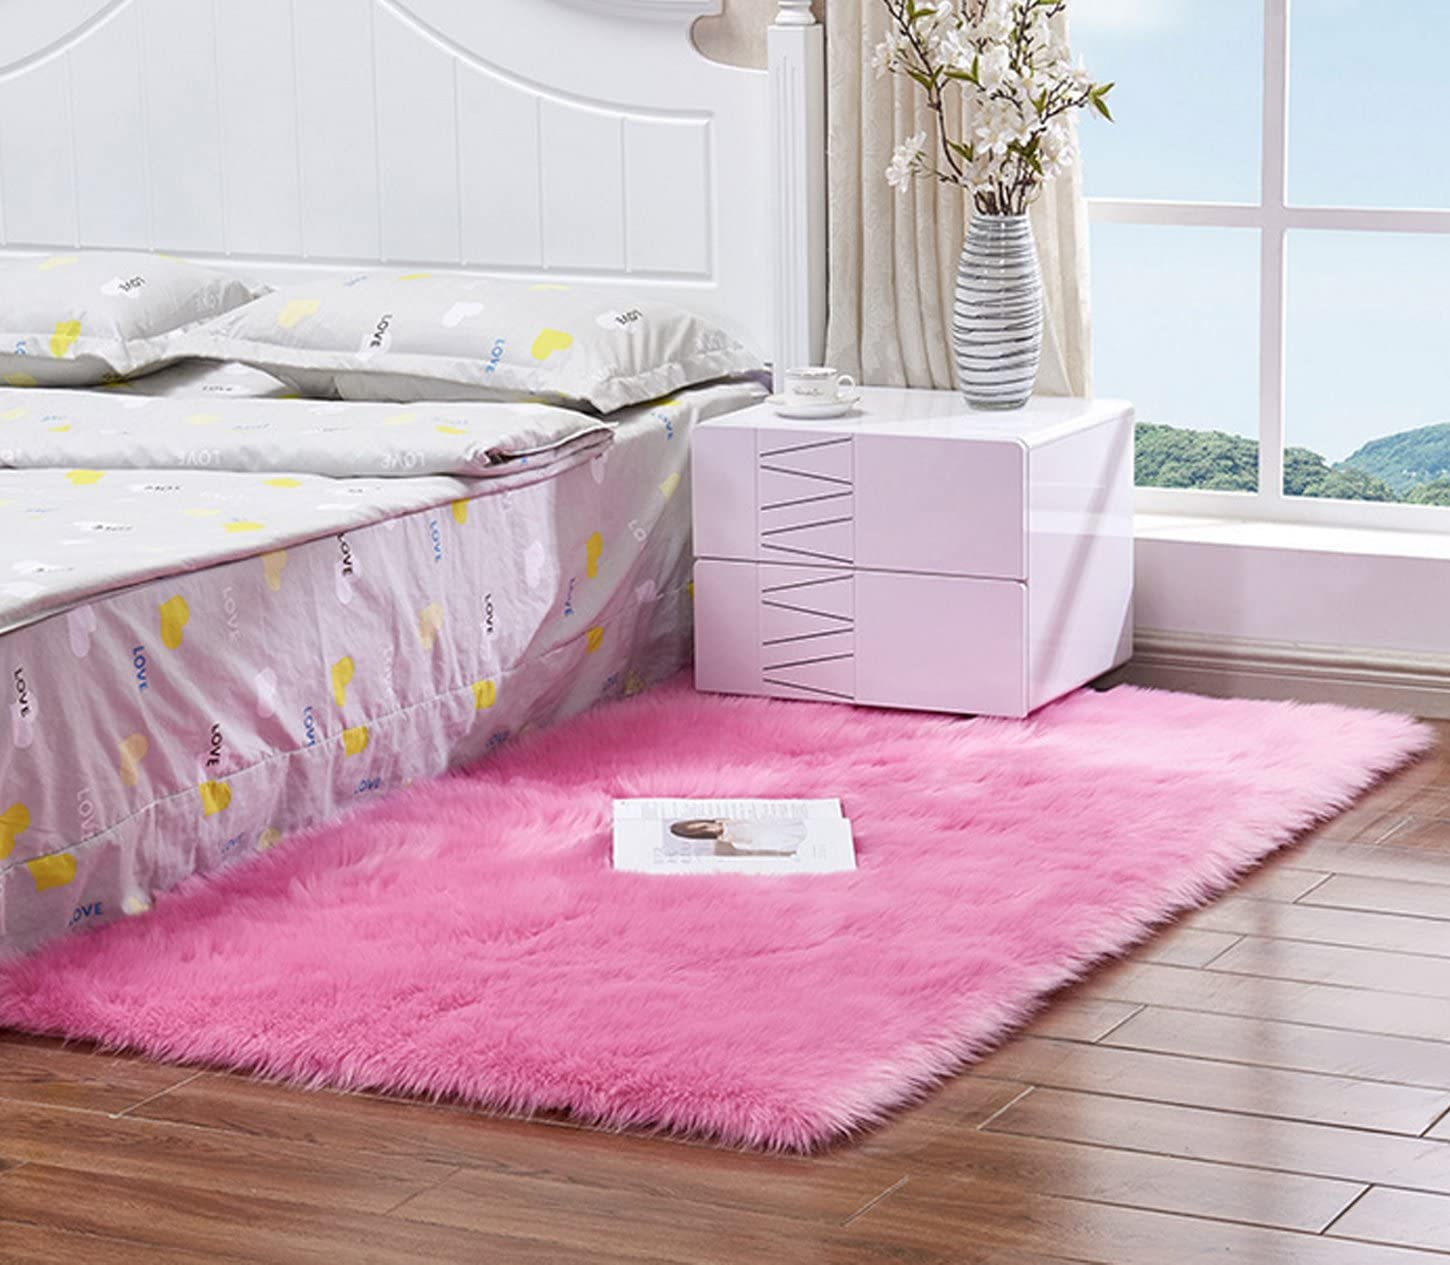 AUTENPOO Faux Fur Sheepskin Area Rug,Solid Shaggy Area Rugs for Living Bedroom Floor – Pink 2ftx3ft